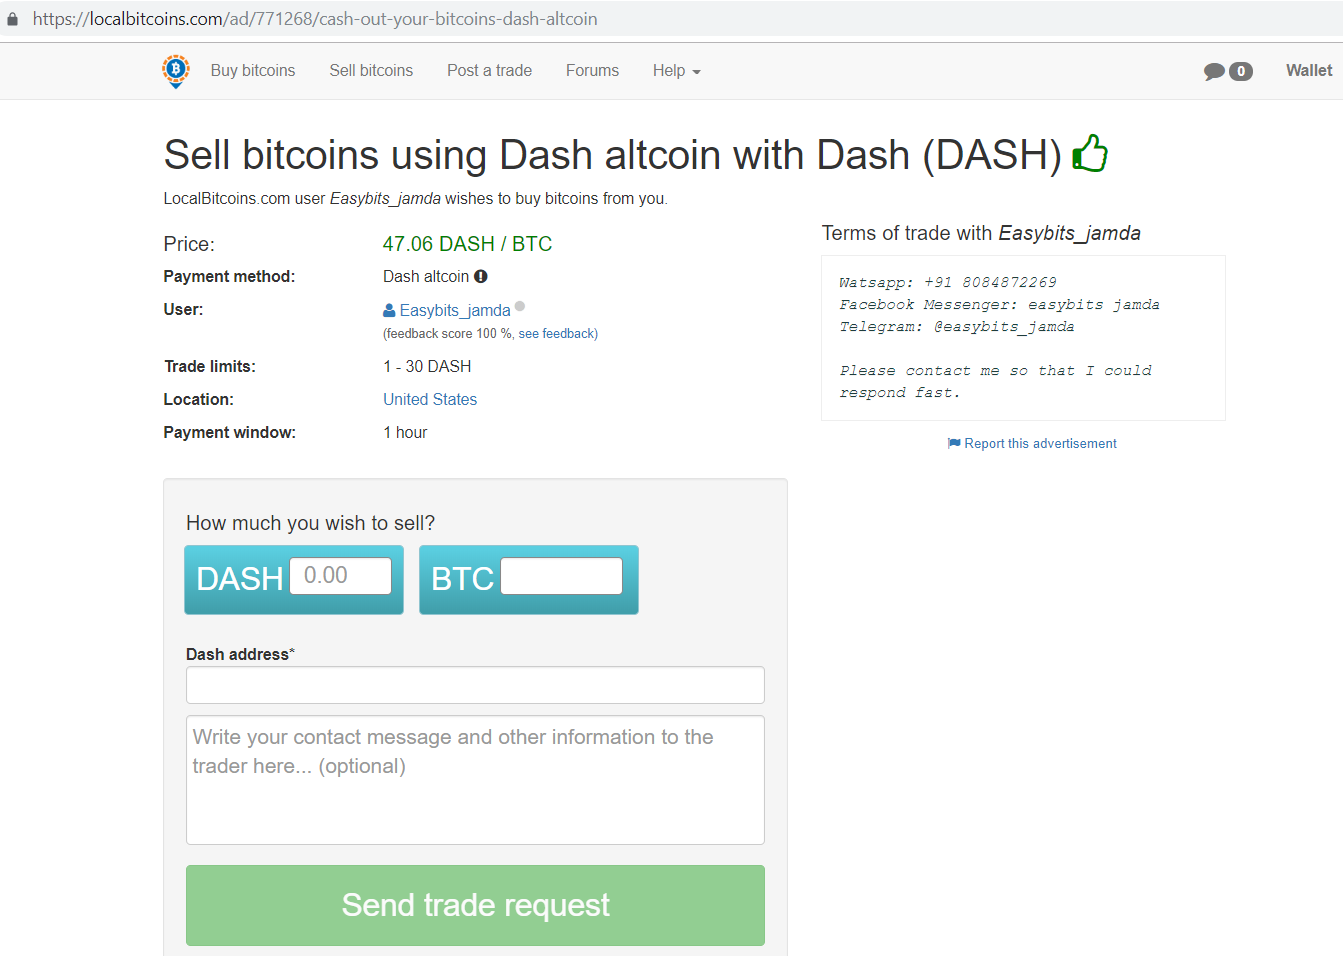 Localbitcoins.com Sell bitcoins using Dash altcoin with Dash (DASH) screen.